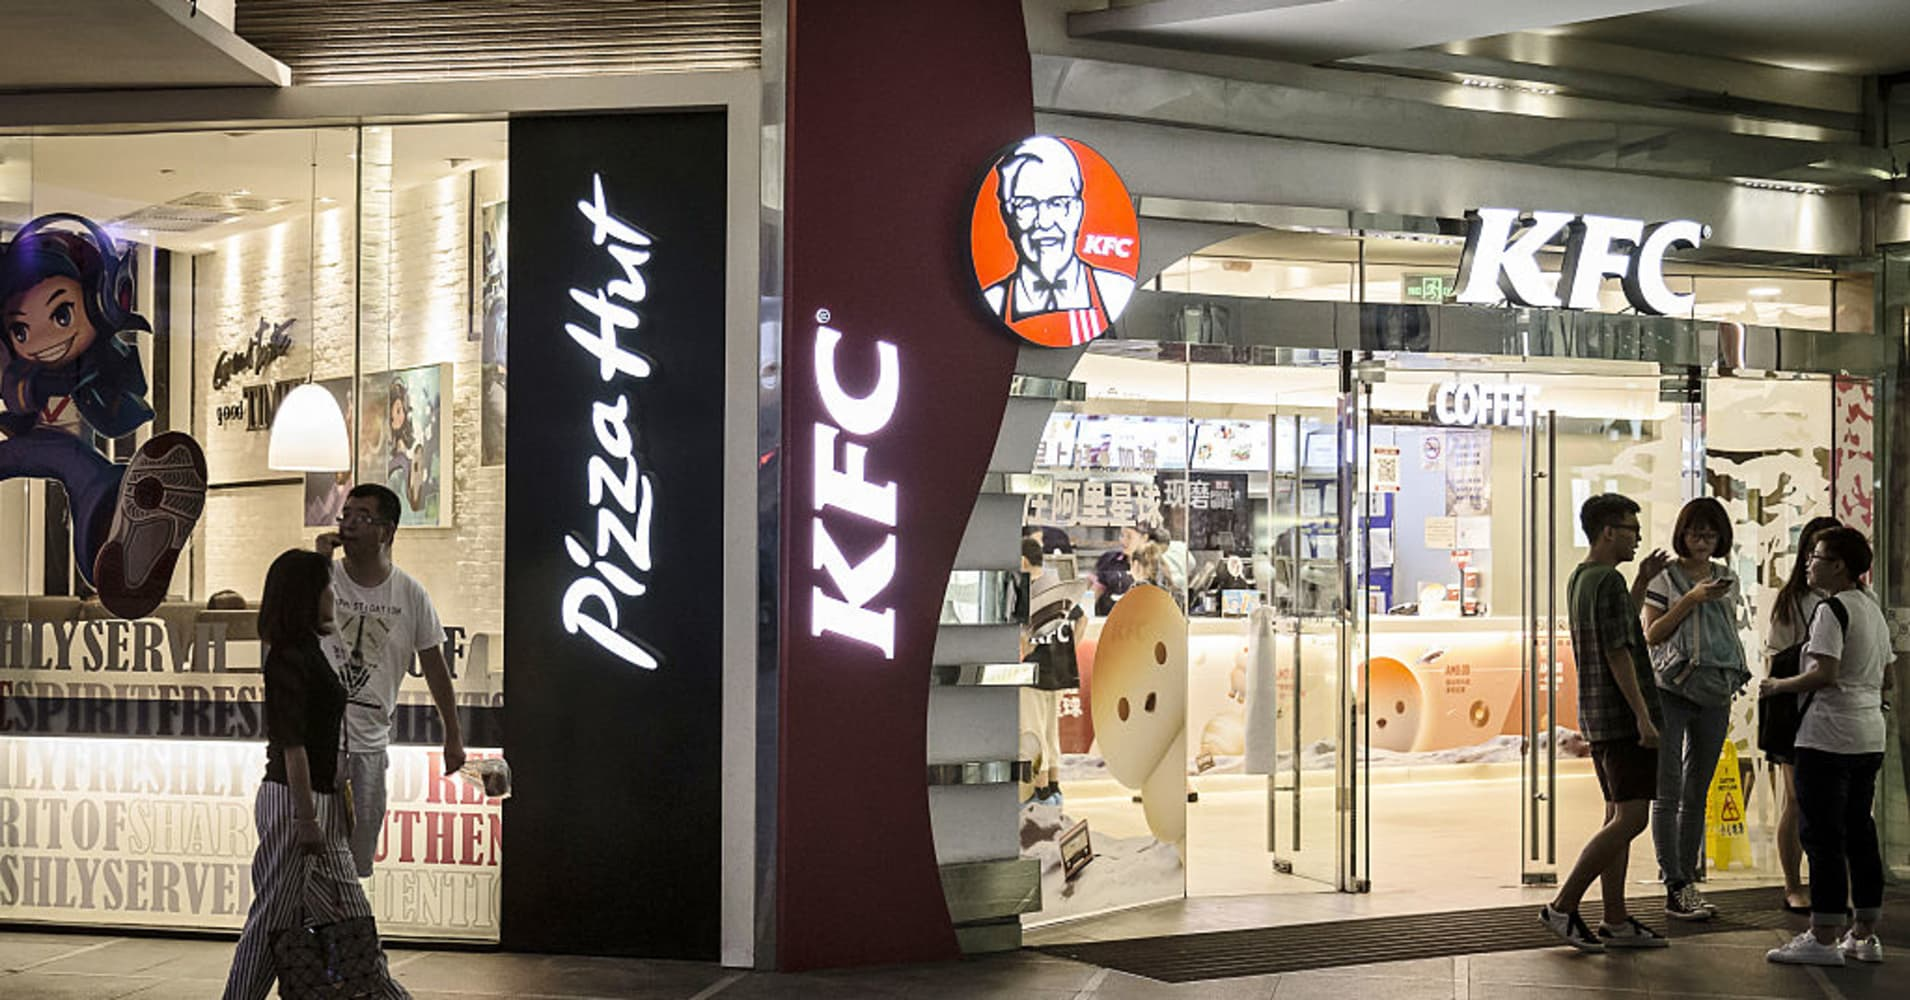 Yum China Shares Rise After Report That It Rejected Buyout Offer